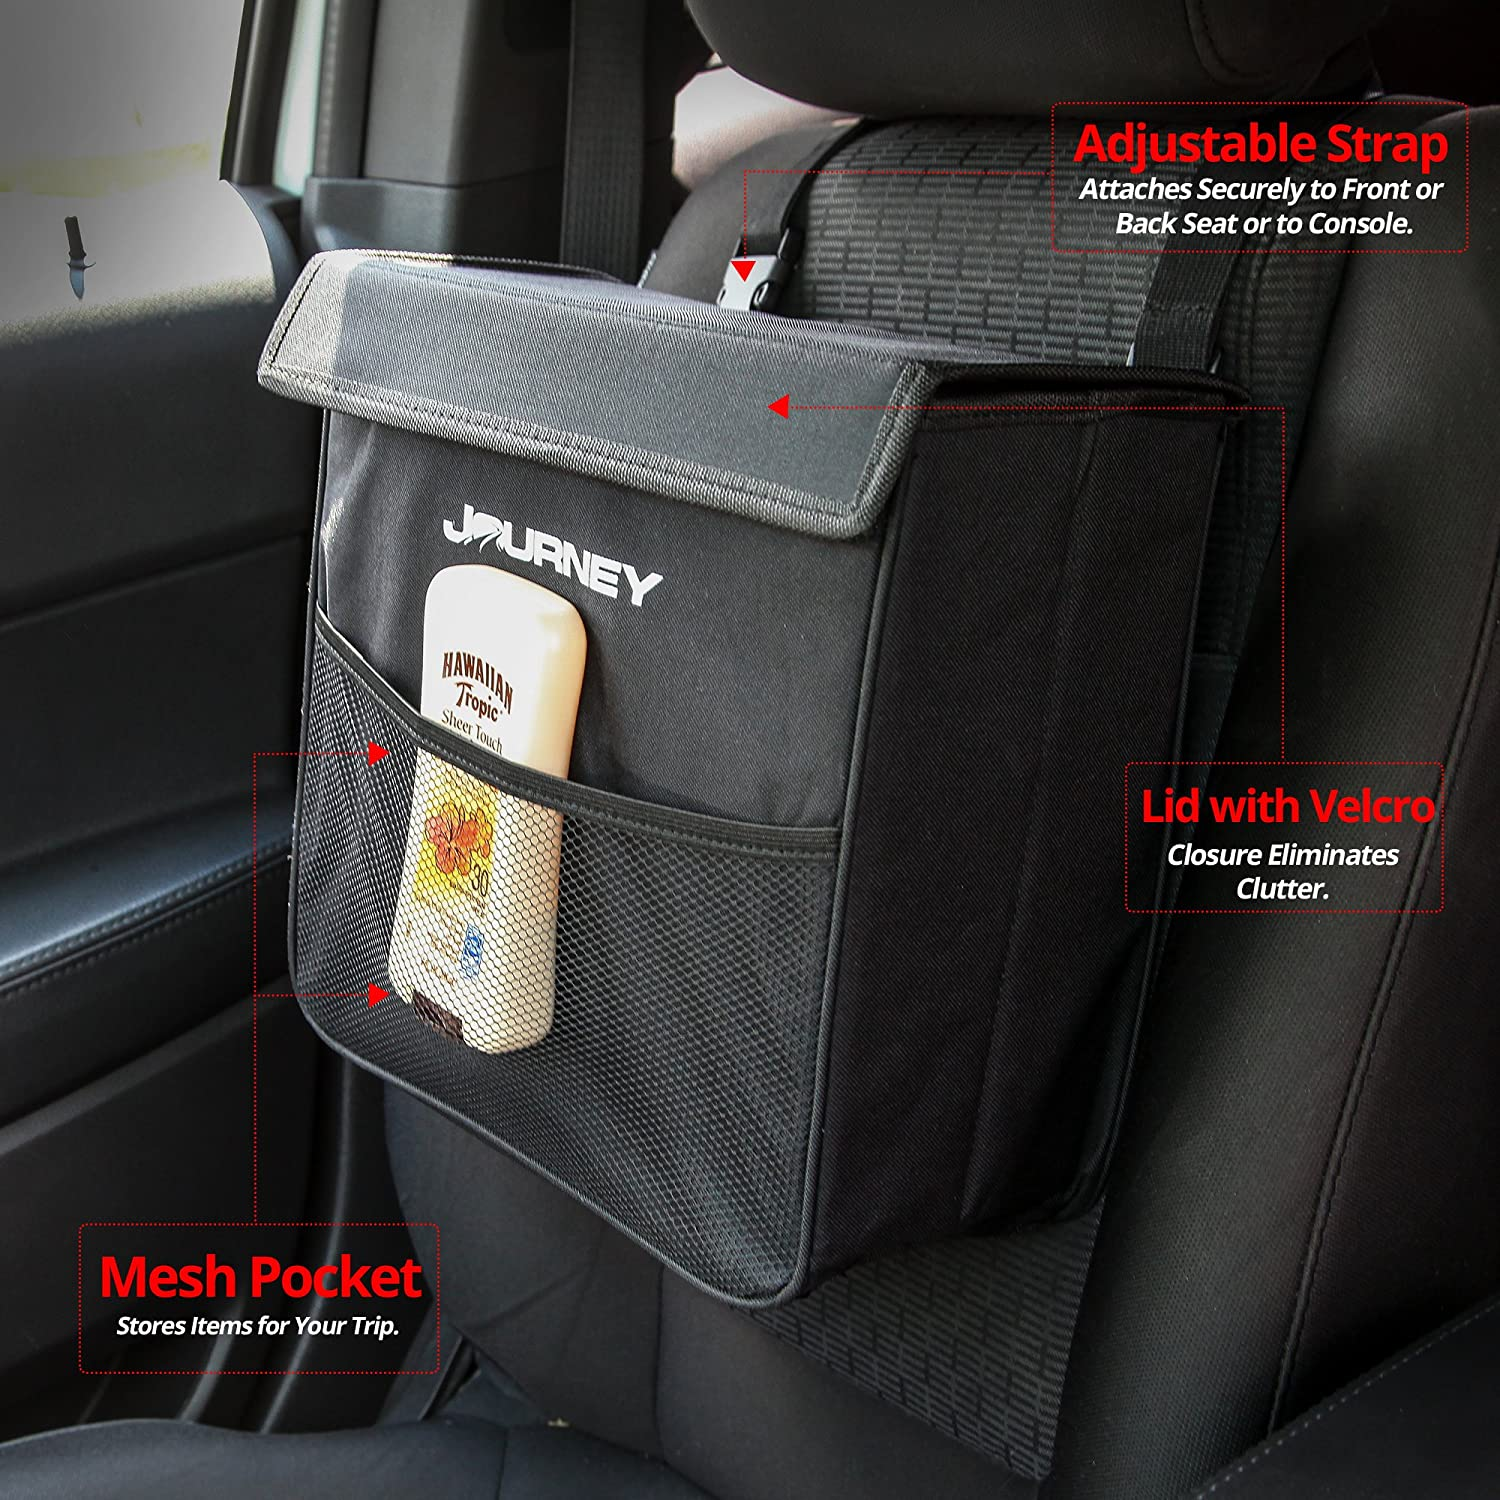 Large Black Leakproof Weighted Car Garbage Can with Lid Car Trash Can Keeps Vehicle Clutter Free Red Earth Naturals 4350404599